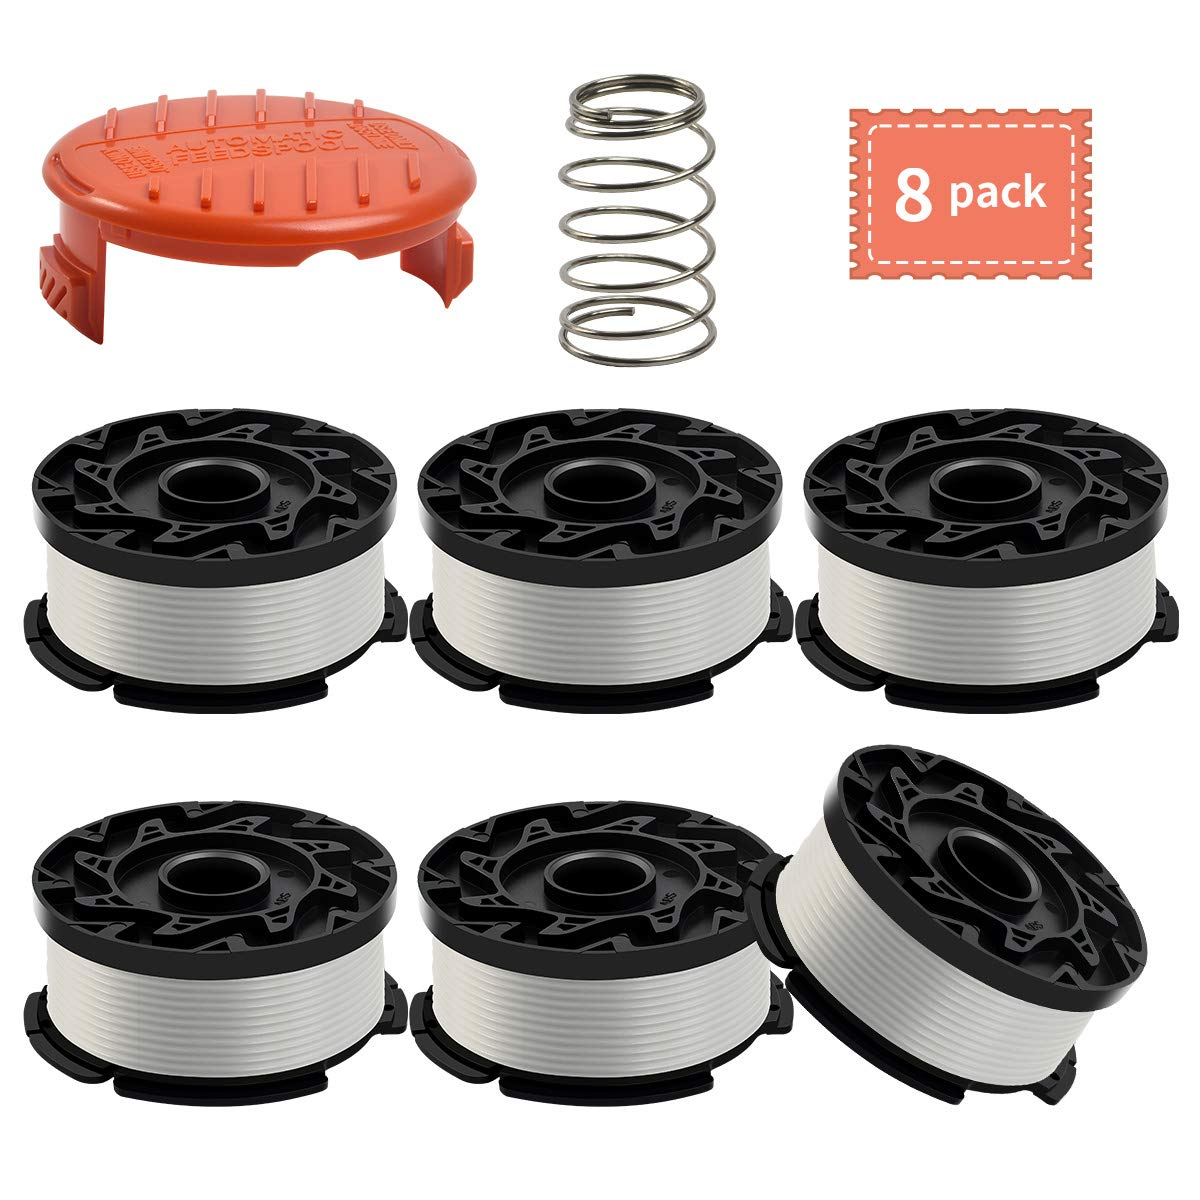 Black and Decker AF-100 Weed Eater Spool,30 Feet/0.065 Inches Line String Trimmer Autofeed System Replacement Spool (6 Spool,1 Cap,1 Spring) by Generic